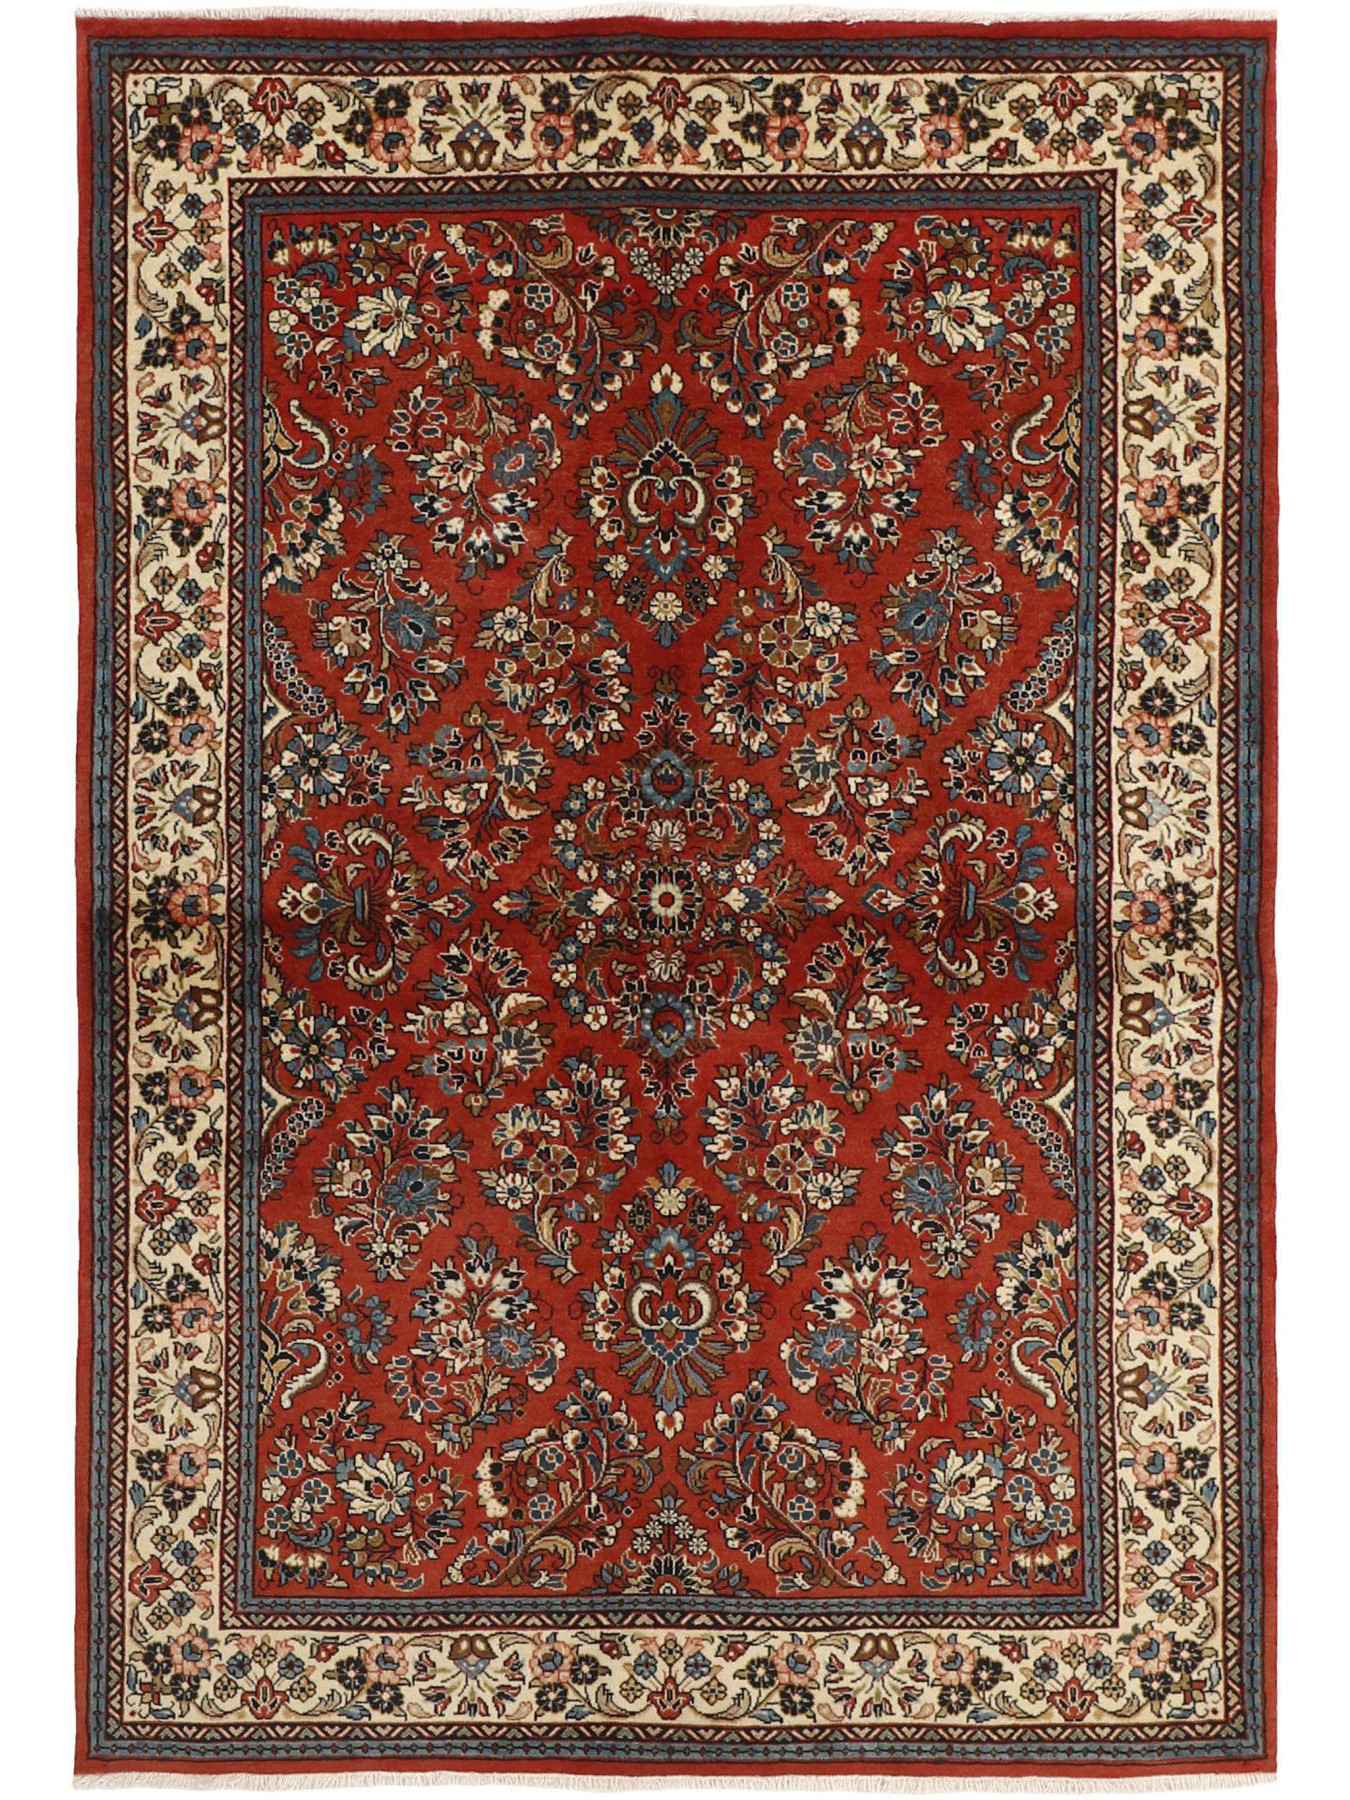 Tapis persans - Sarough Sherkat